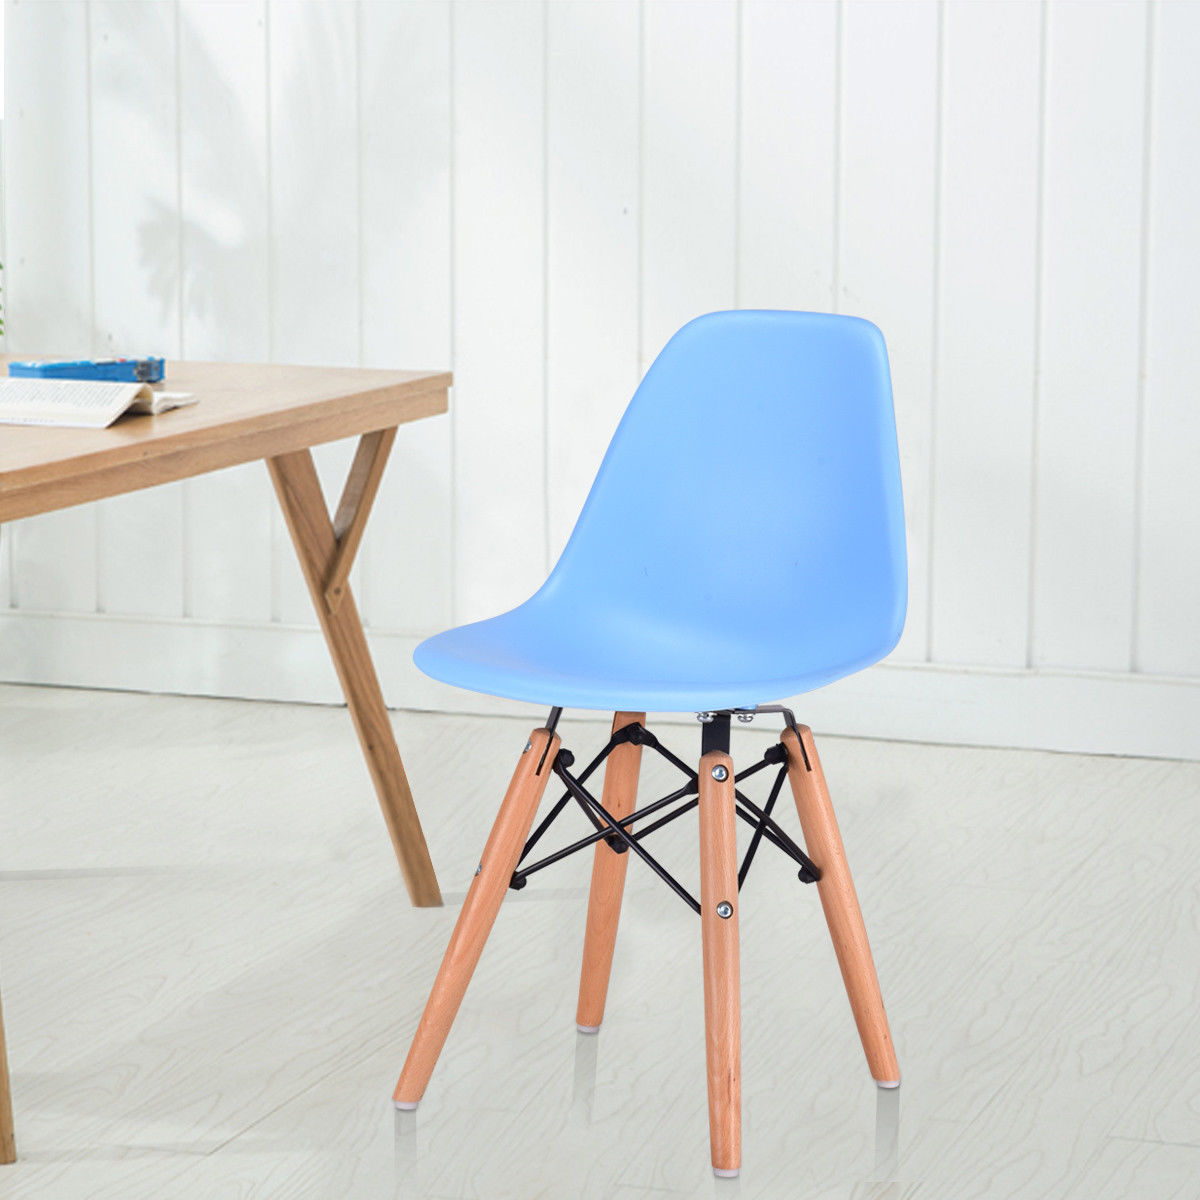 Giantex Modern Kids Dining Side Armless Chair Blue Molded Plastic Seat Wood Legs Children Chairs Home Furniture HW56499NY цена 2017